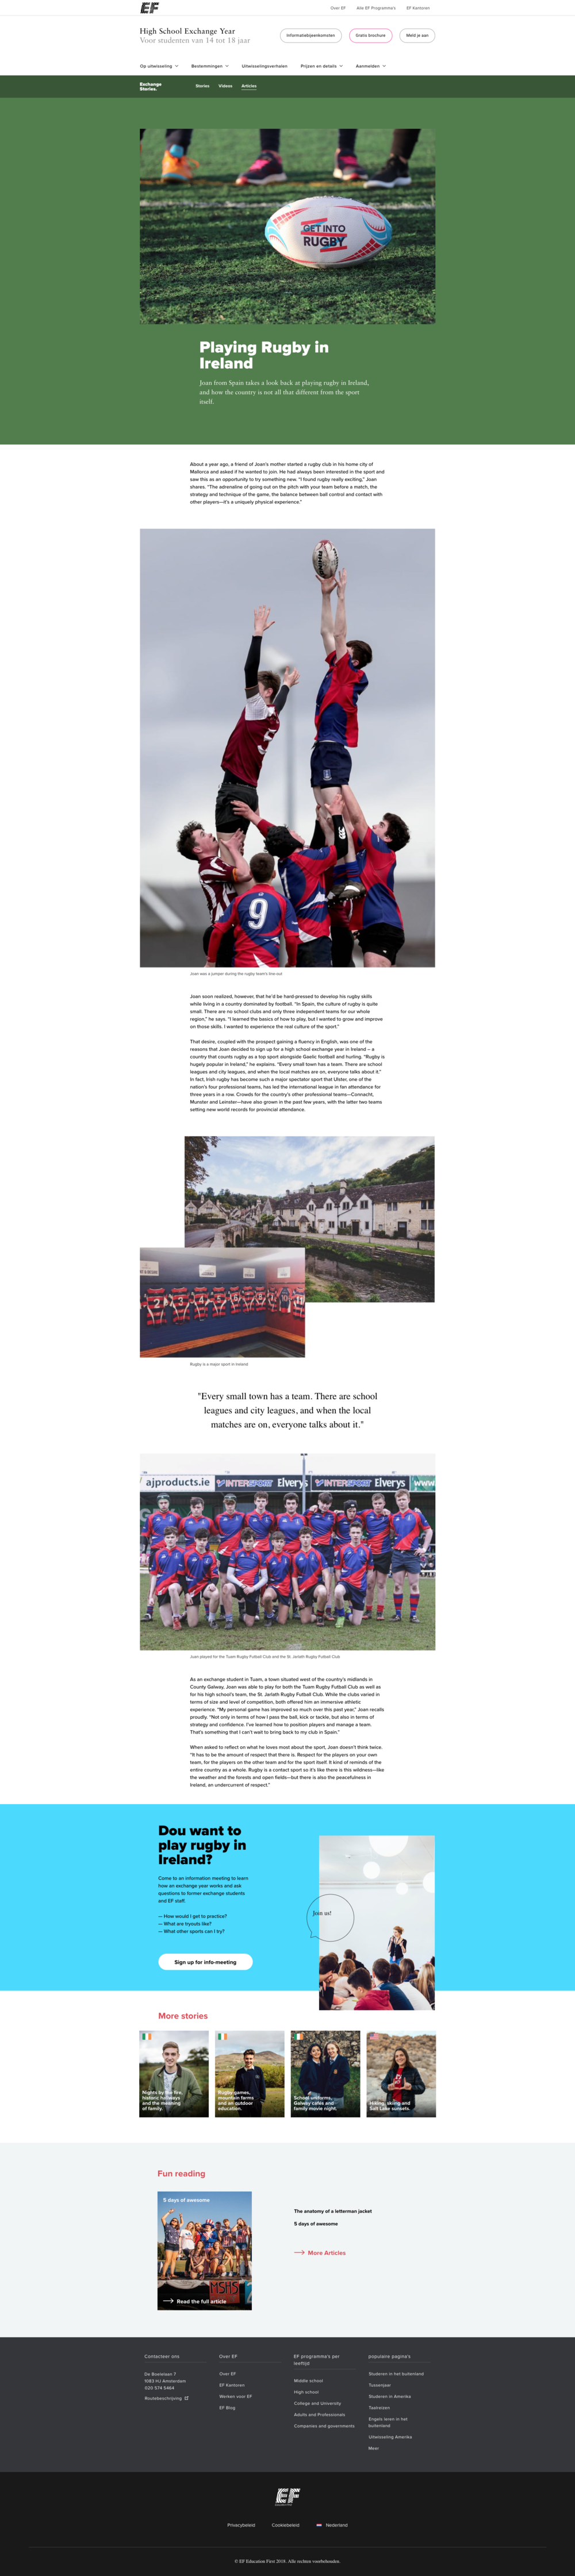 screencapture-ef-nl-highschool-exchange-stories-articles-rugbyinireland-2018-08-30-15_29_37.png